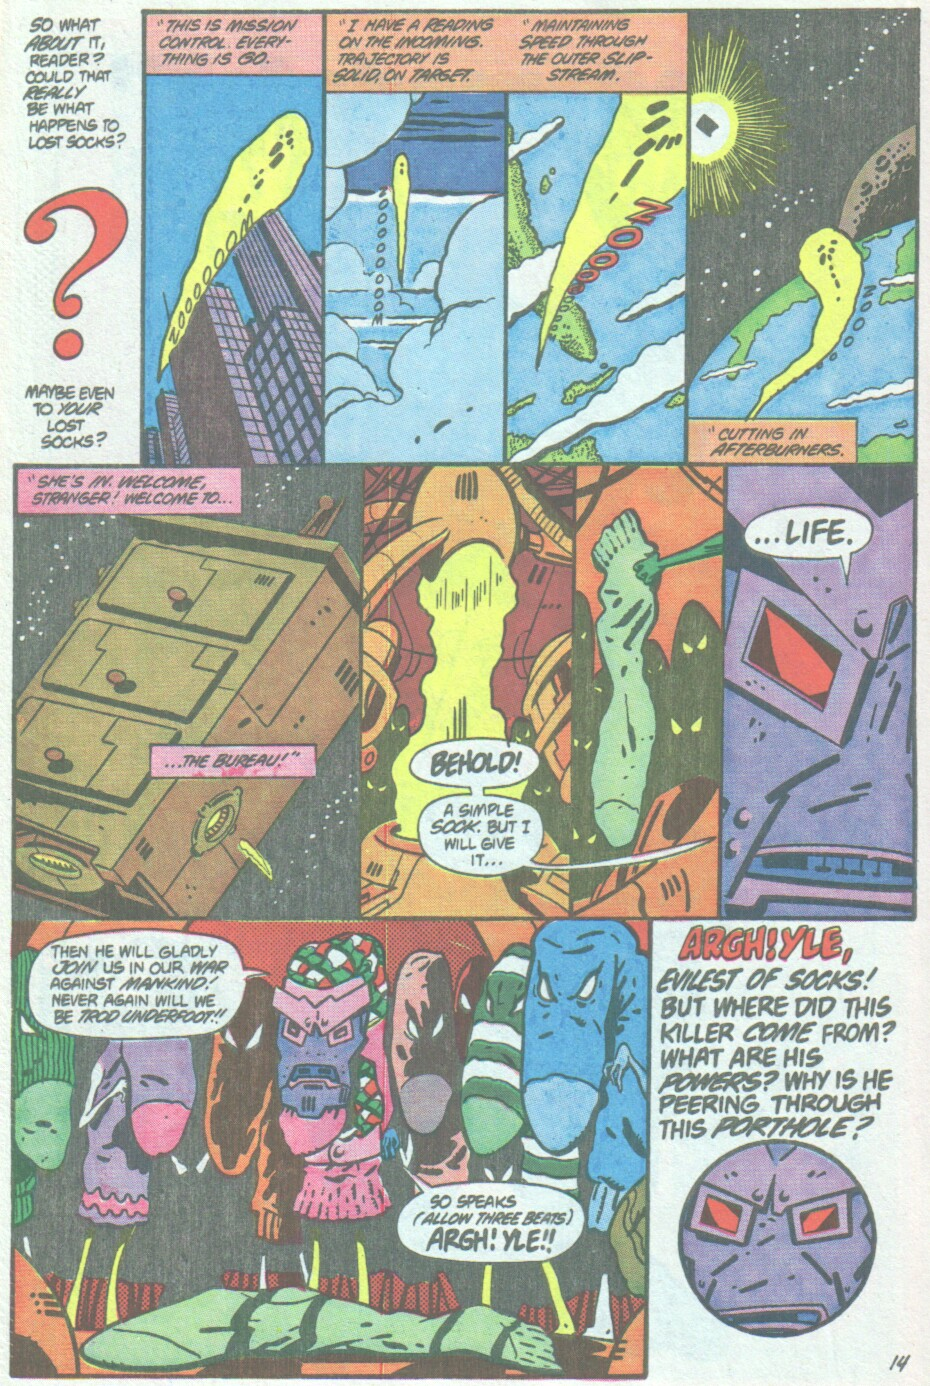 Read online Ambush Bug comic -  Issue #4 - 15